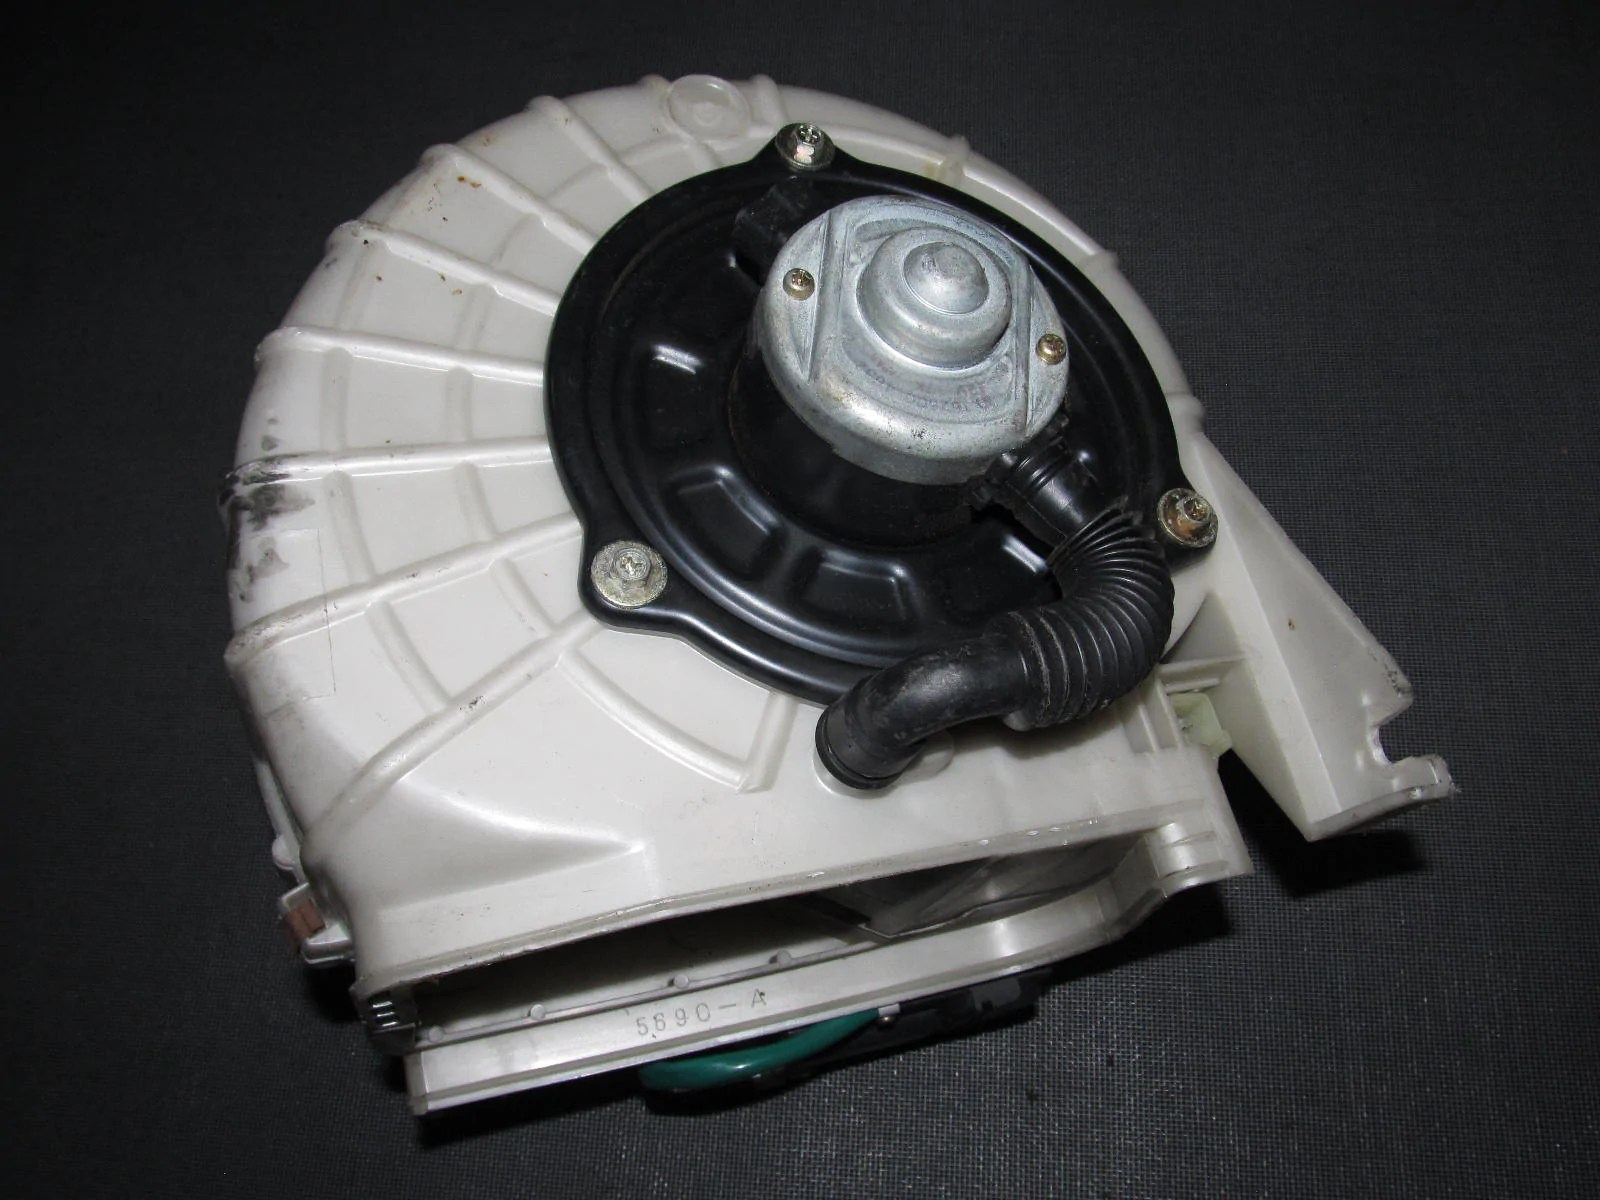 88 89 90 91 honda crx oem heater a c blower motor unit assembly [ 1600 x 1200 Pixel ]